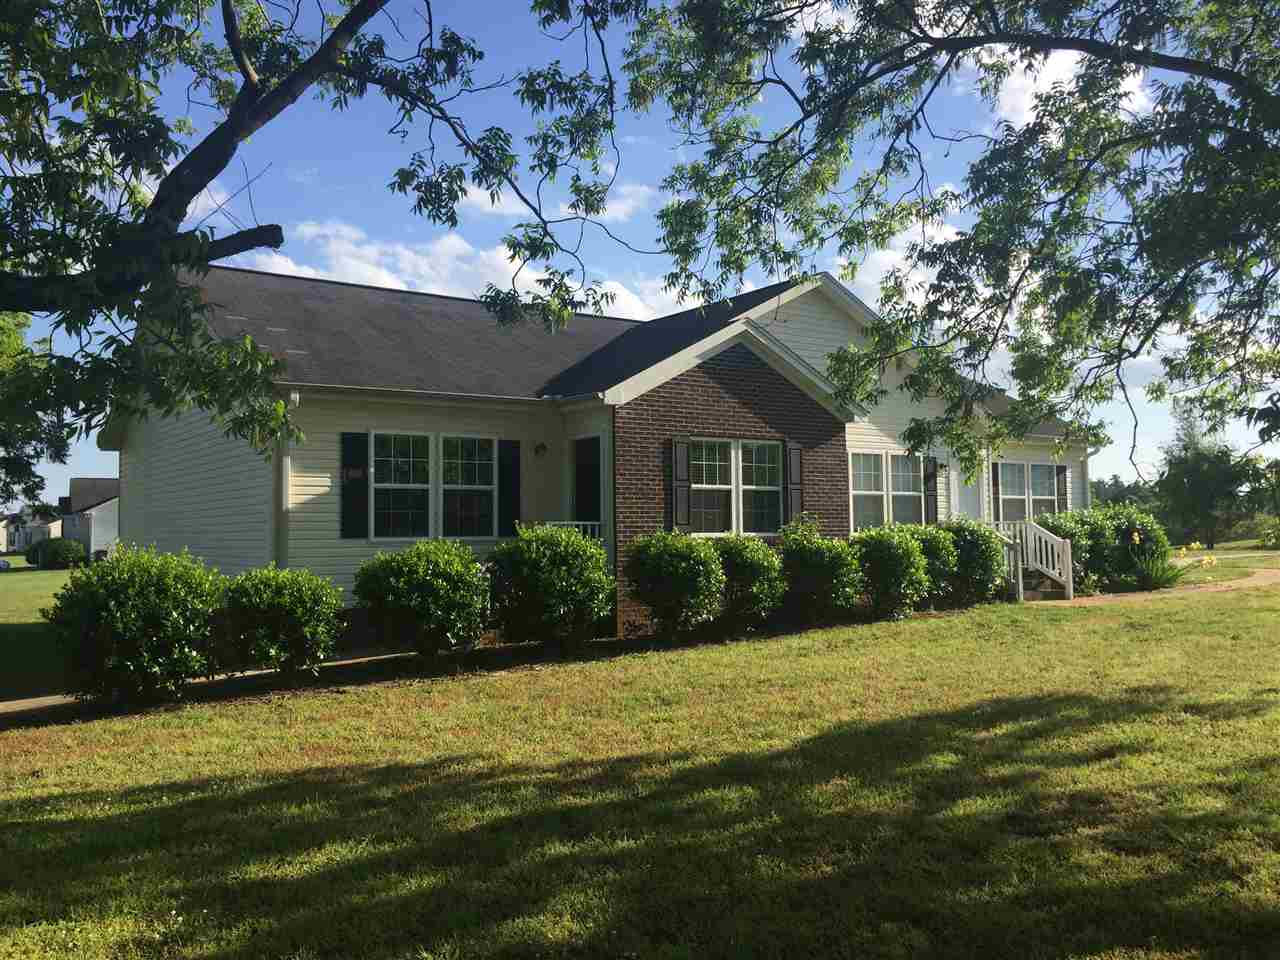 Rental Homes for Rent, ListingId:36171248, location: 442 Hunt Rd Easley 29642